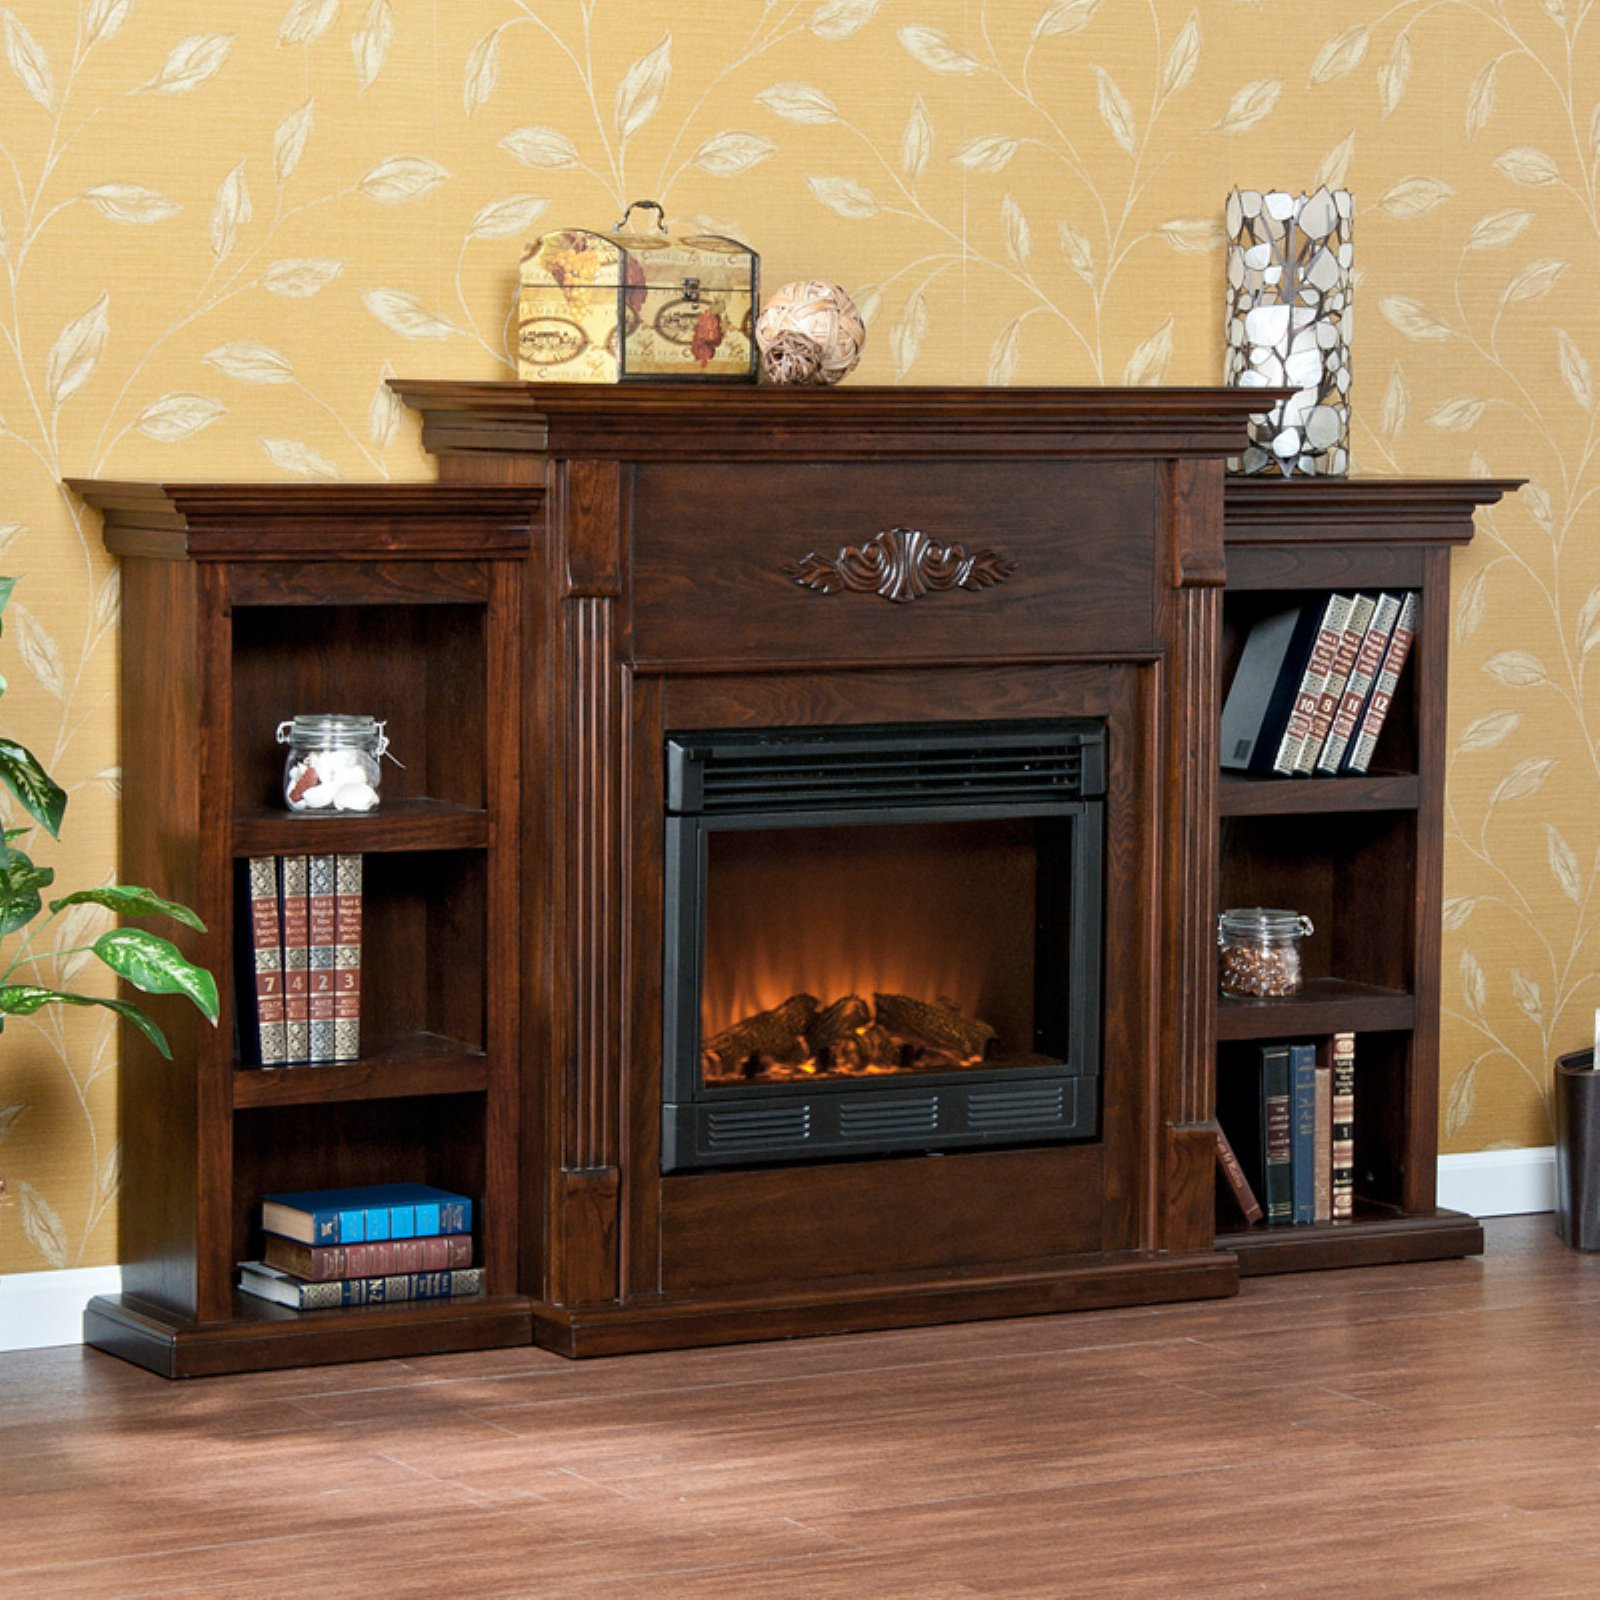 Tennyson Bookcase Electric Fireplace Southern Enterprises Tennyson Espresso Electric Fireplace With Bookcases